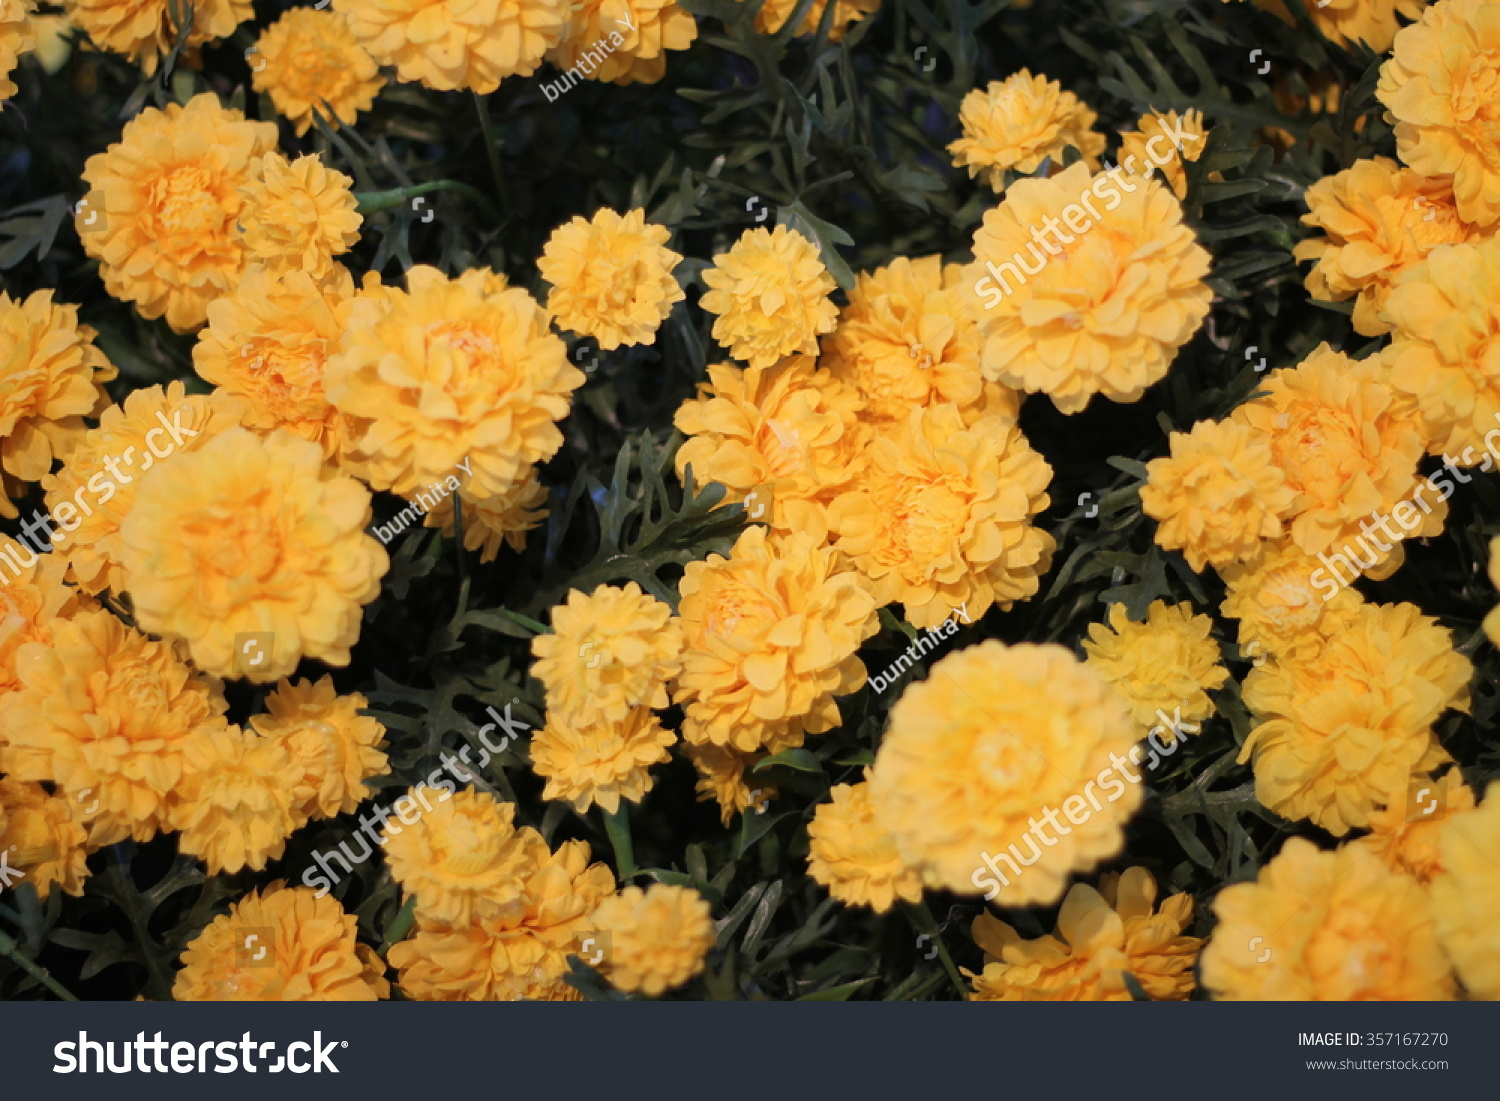 Beautiful flowers world stock photo 357167270 shutterstock the beautiful flowers in the world izmirmasajfo